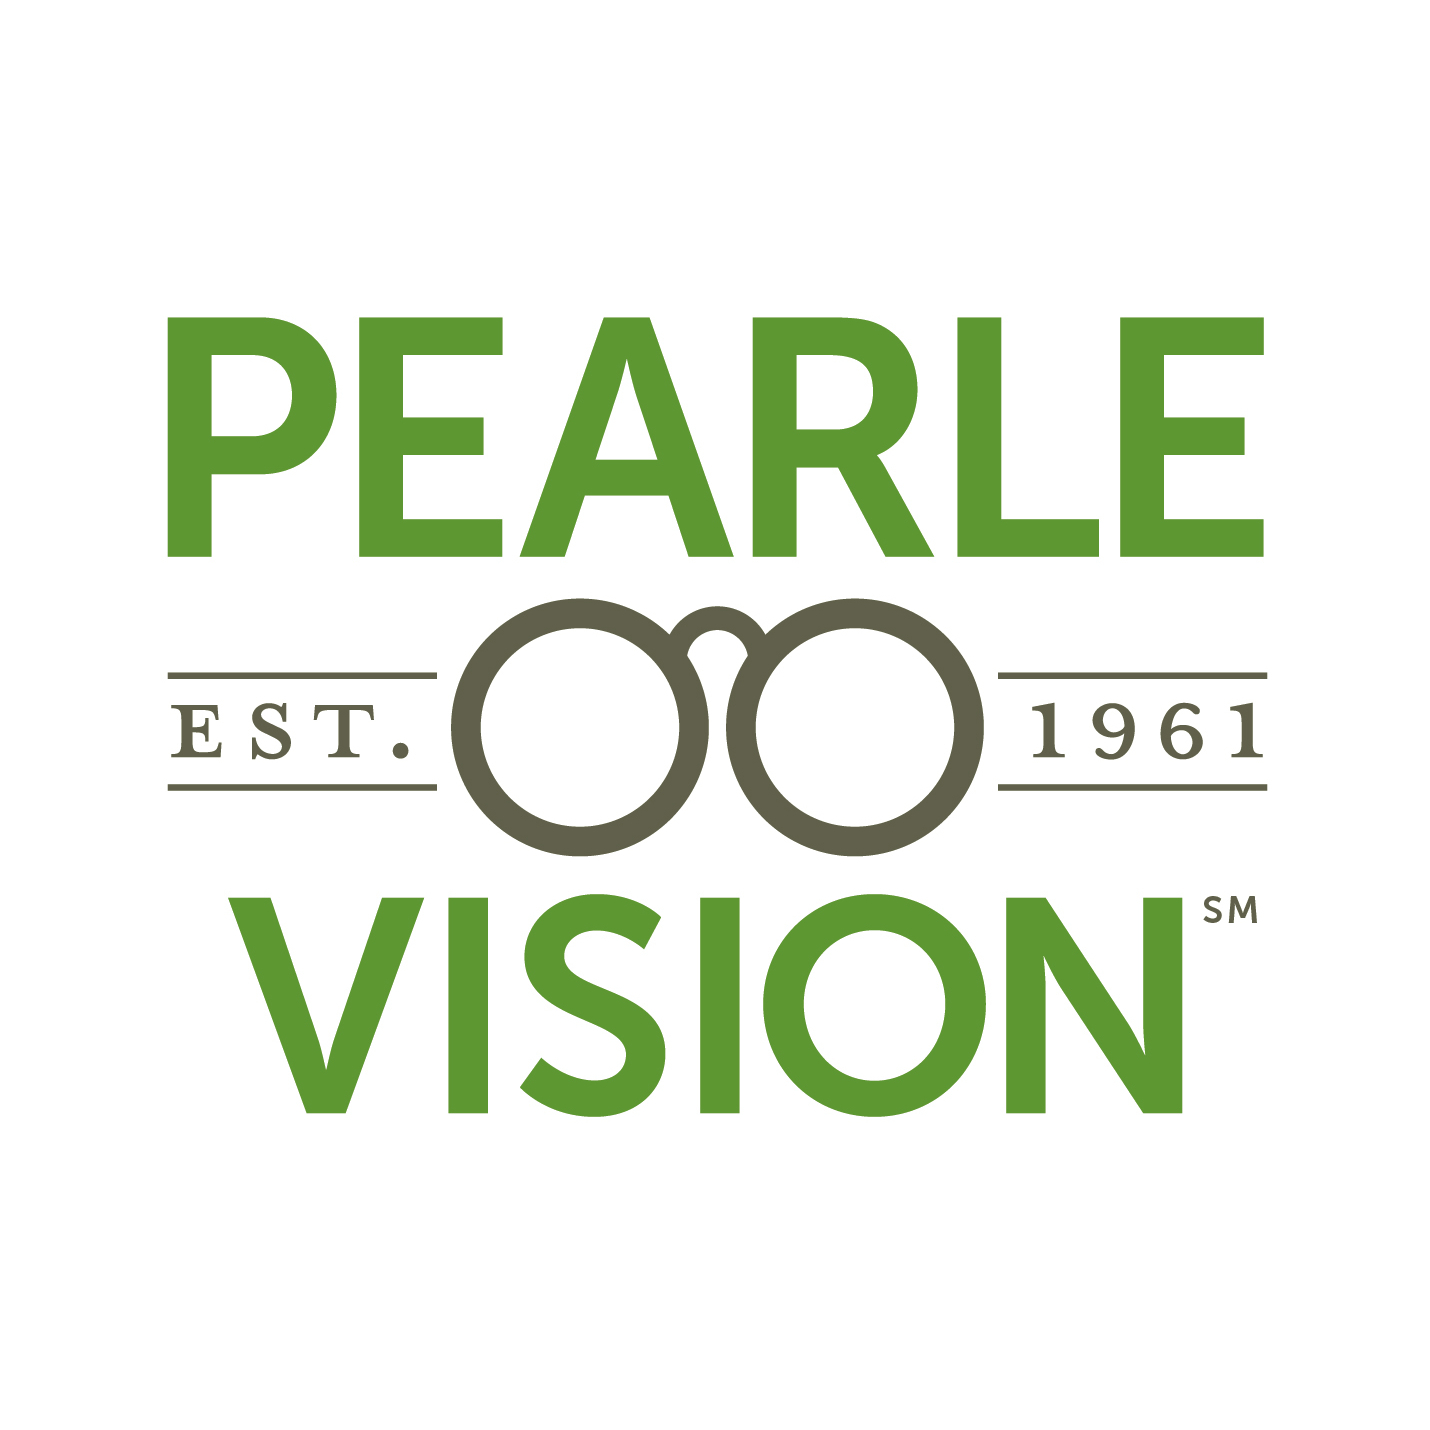 Pearle Vision - Closed